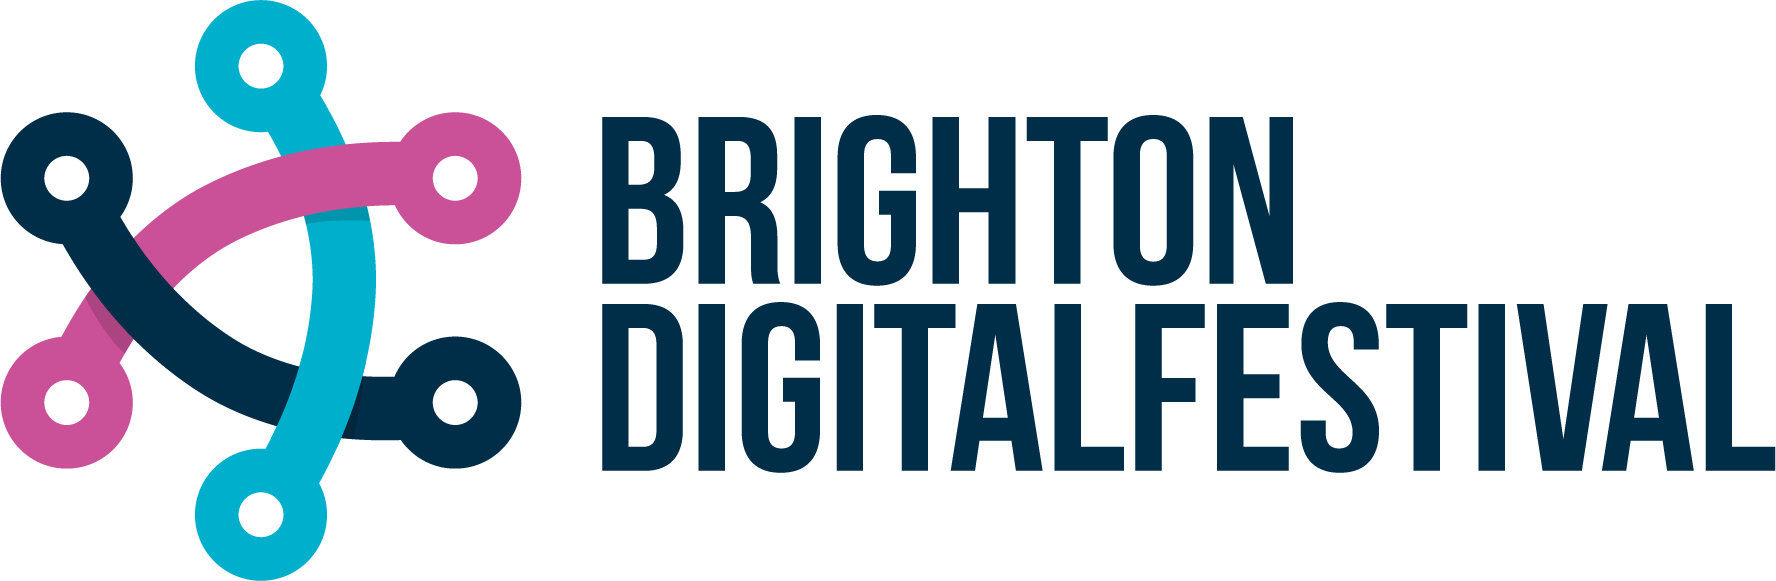 Brighton Digital Festival